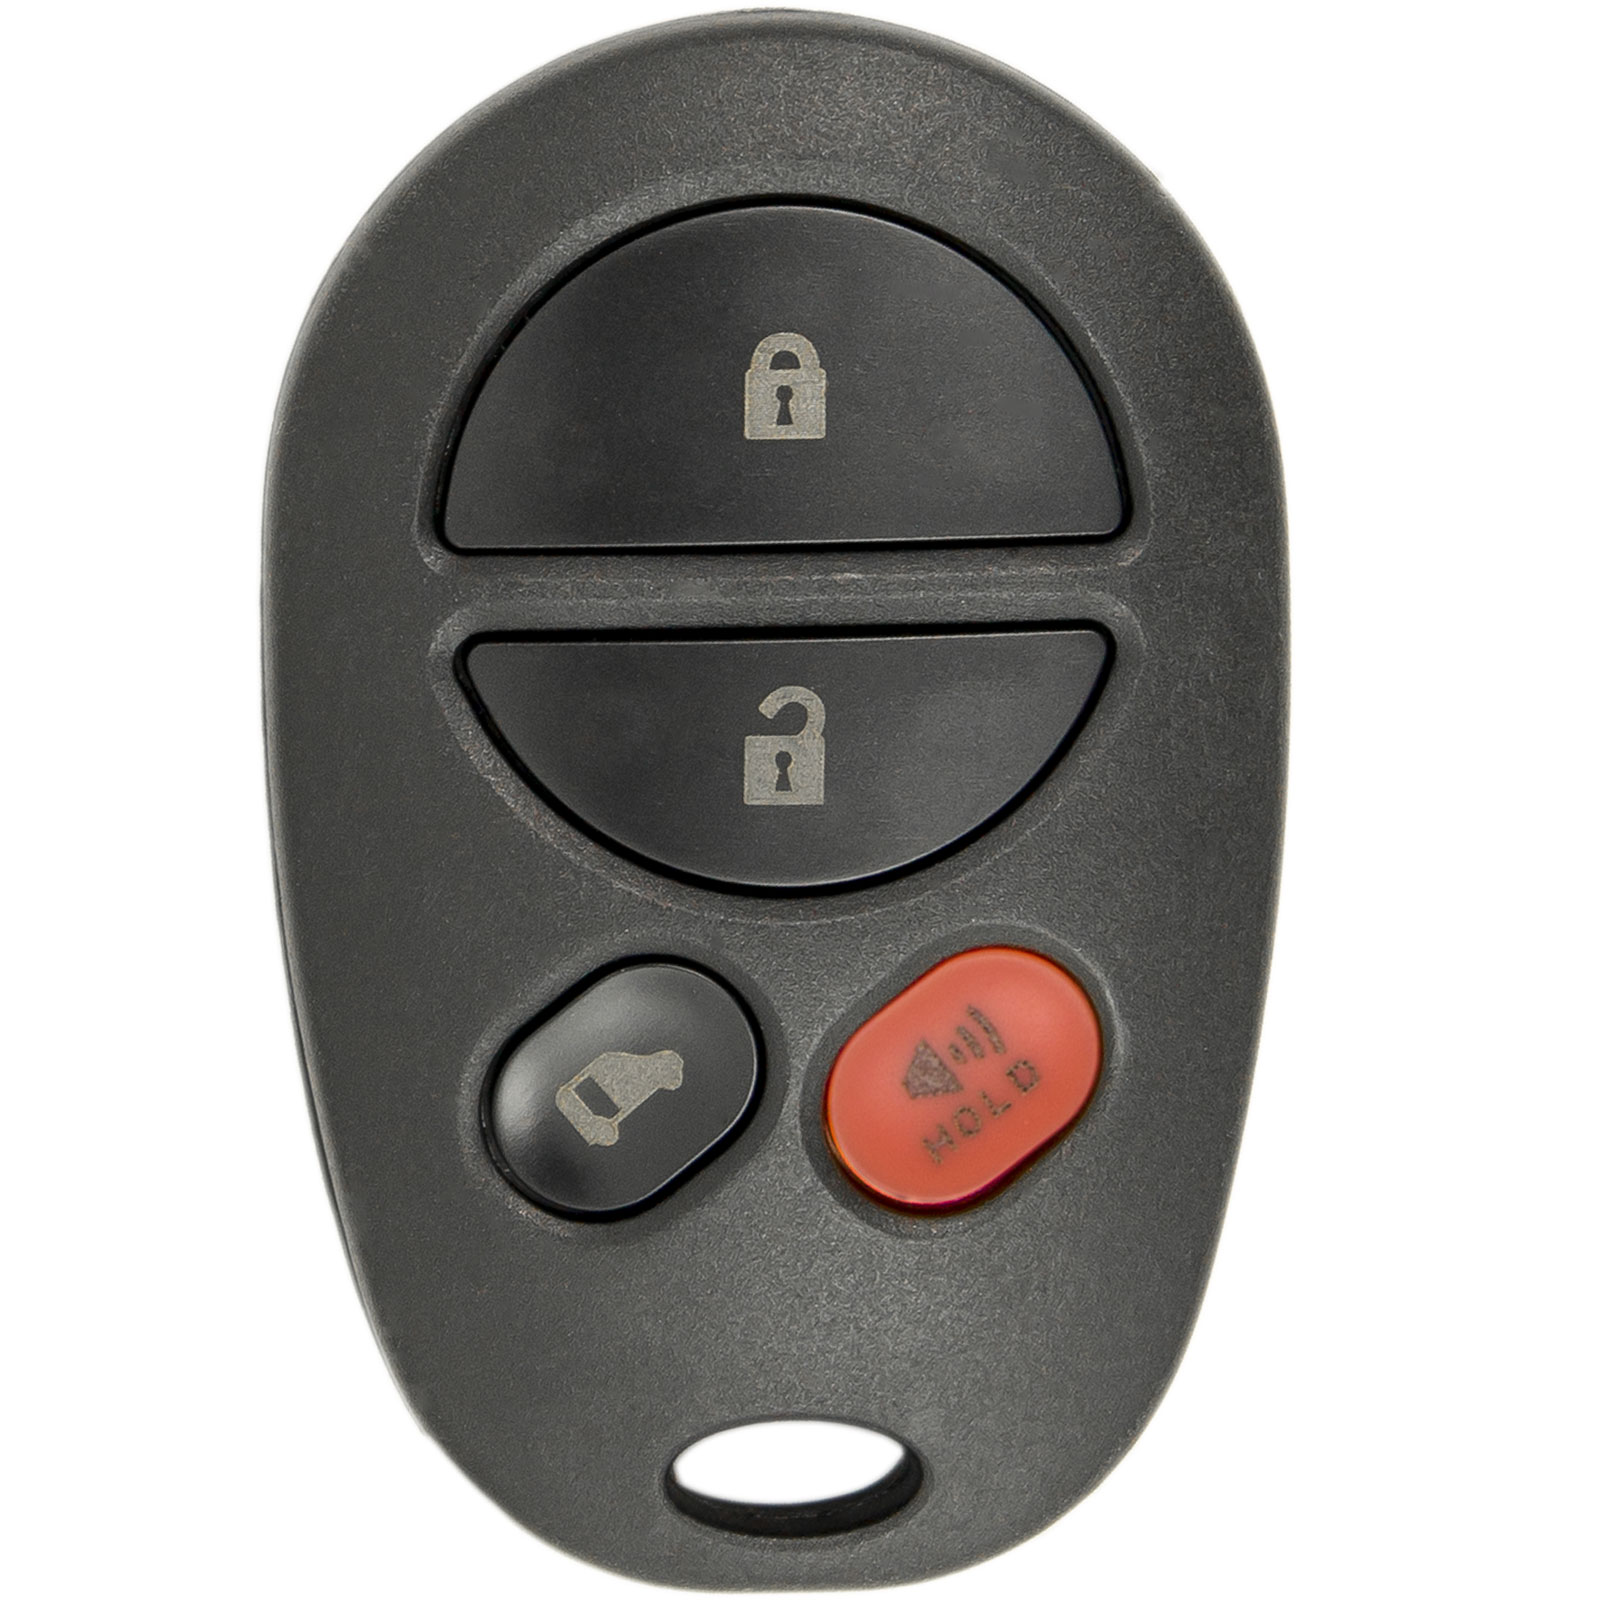 New Replacement Keyless Entry Remote Key Fob for Toyota Sienna with FCC ID GQ43VT20T